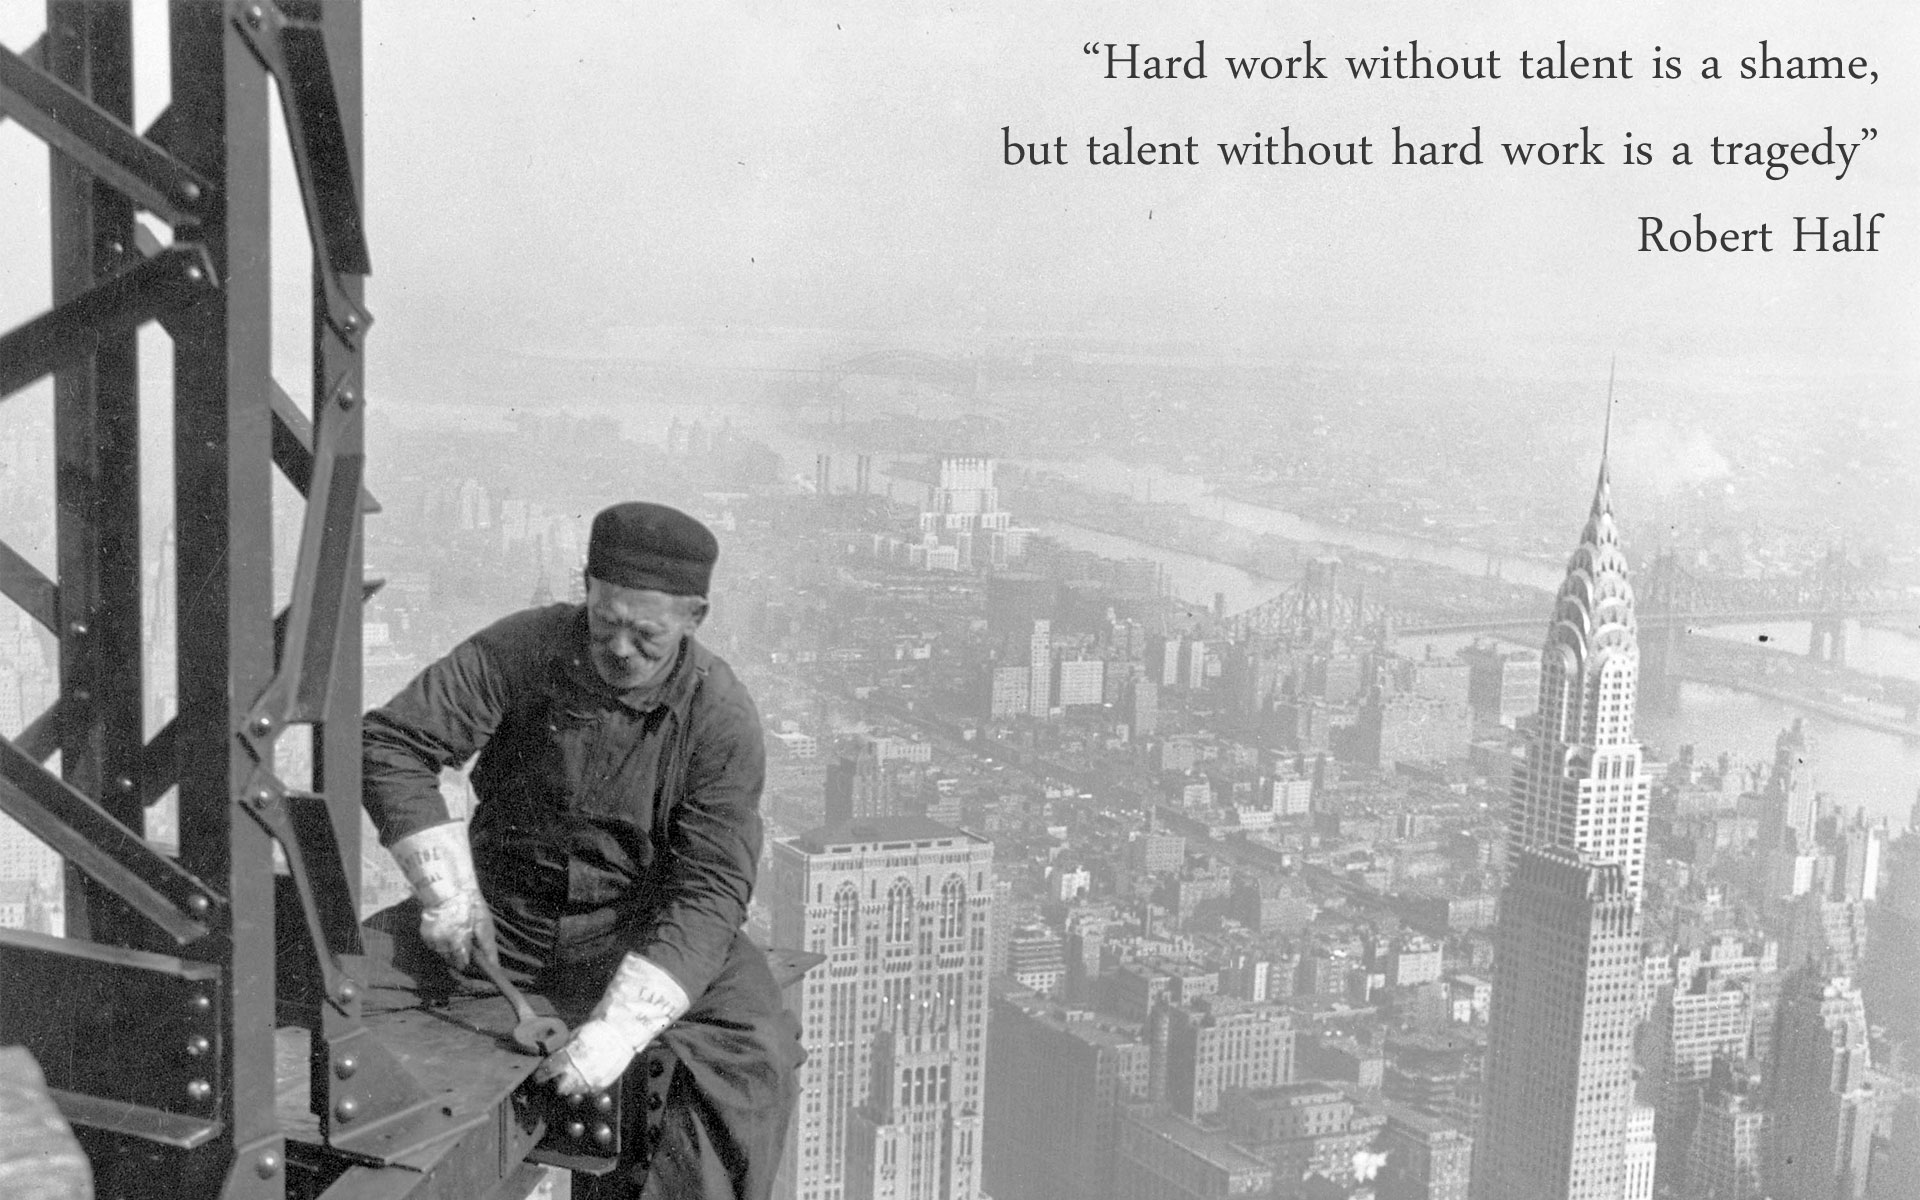 Worker quote #2